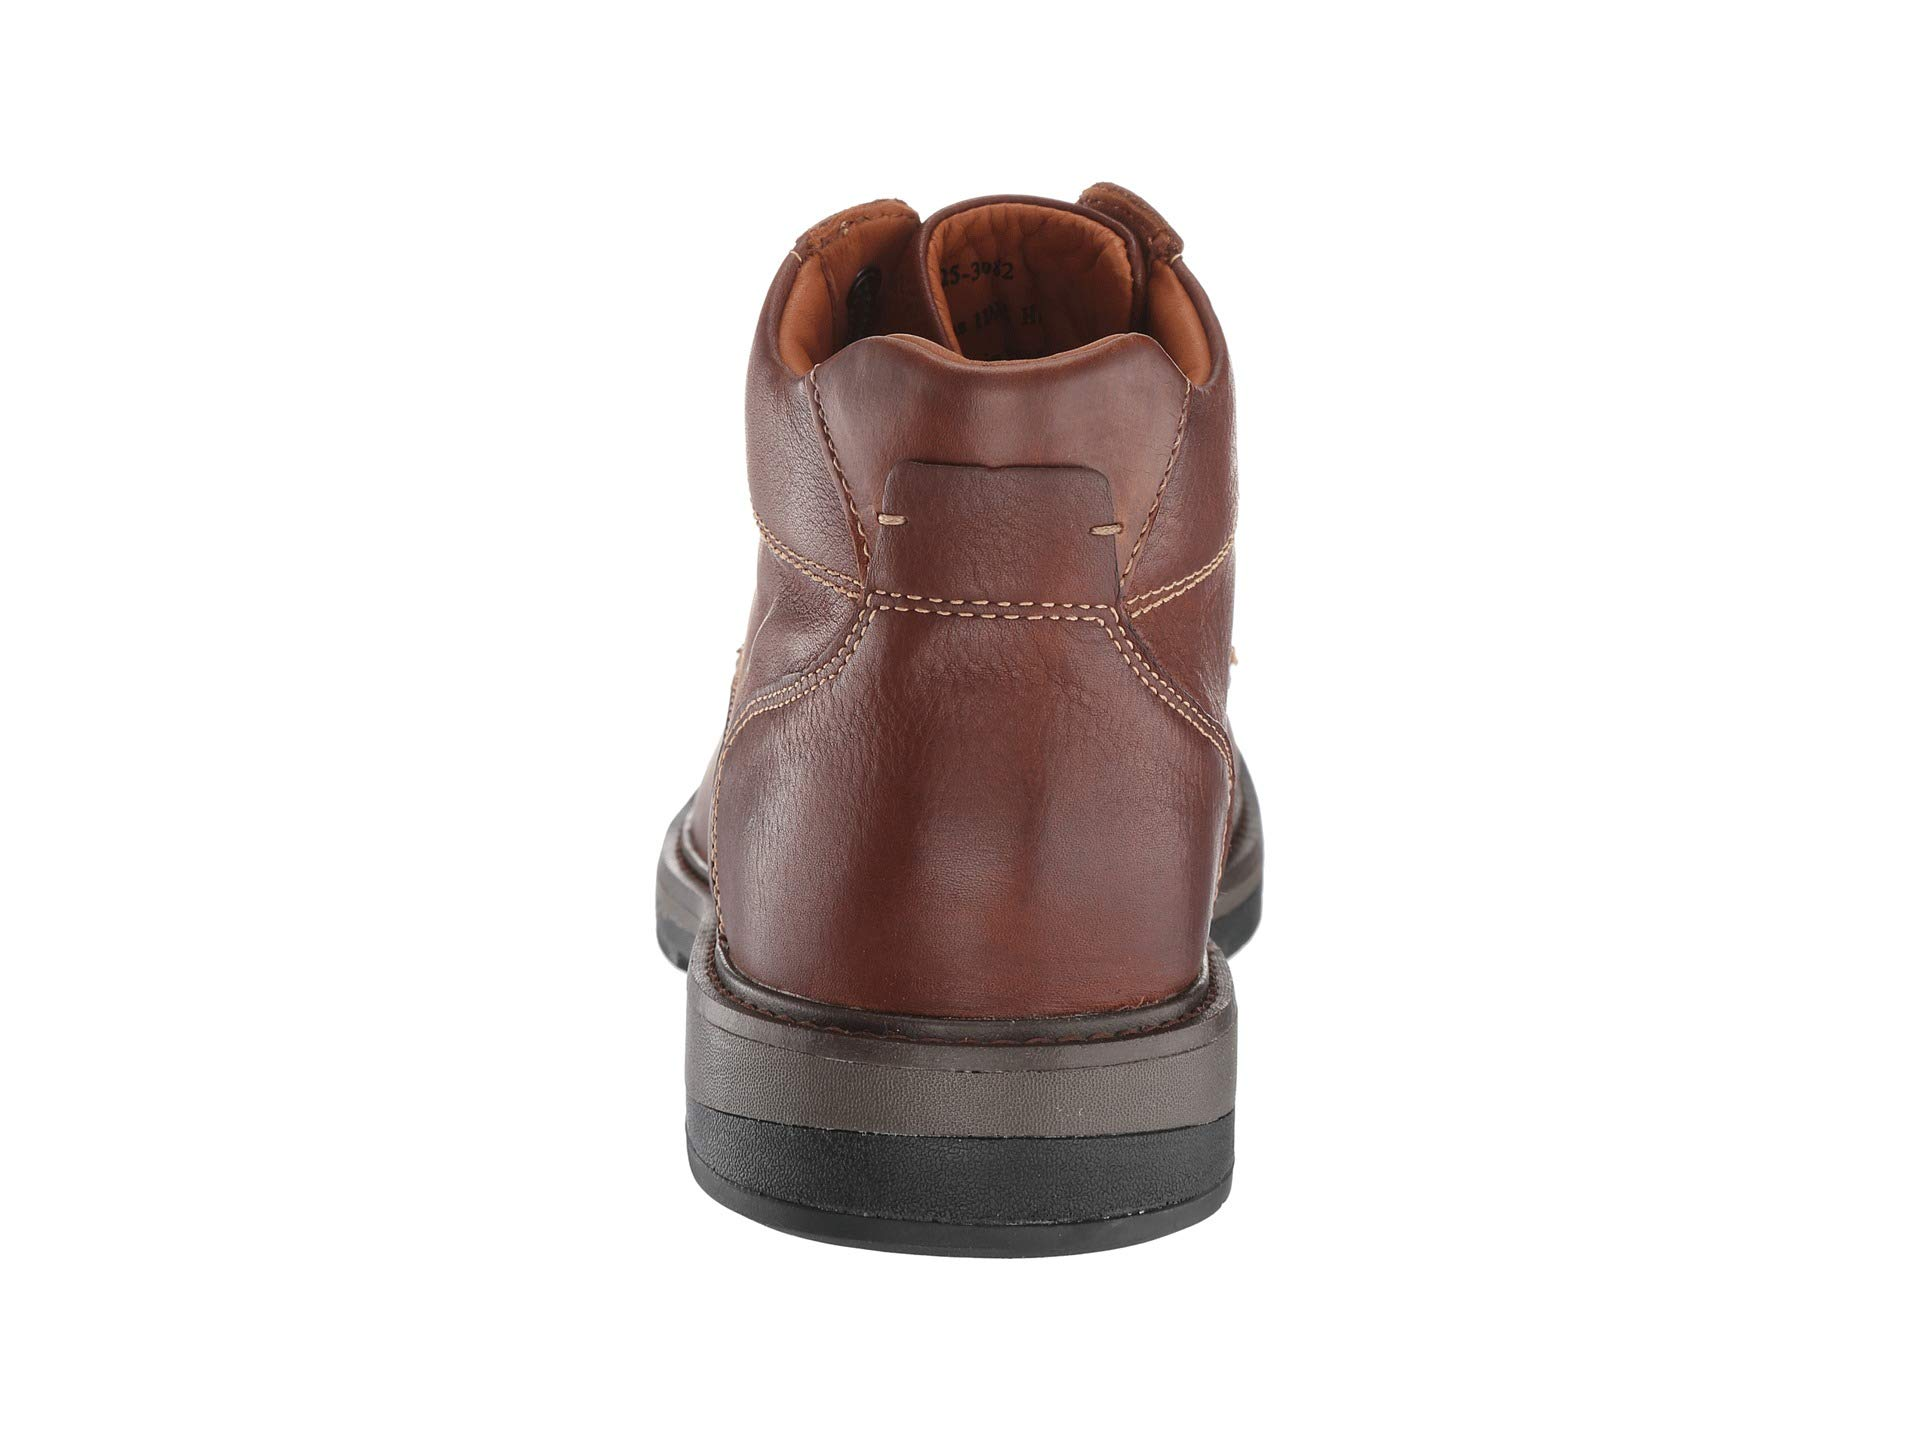 Toe Grain Boot Waterproof amp; Tumbled Murphy Tan Full Moc Rutledge Johnston pxqSXngvw